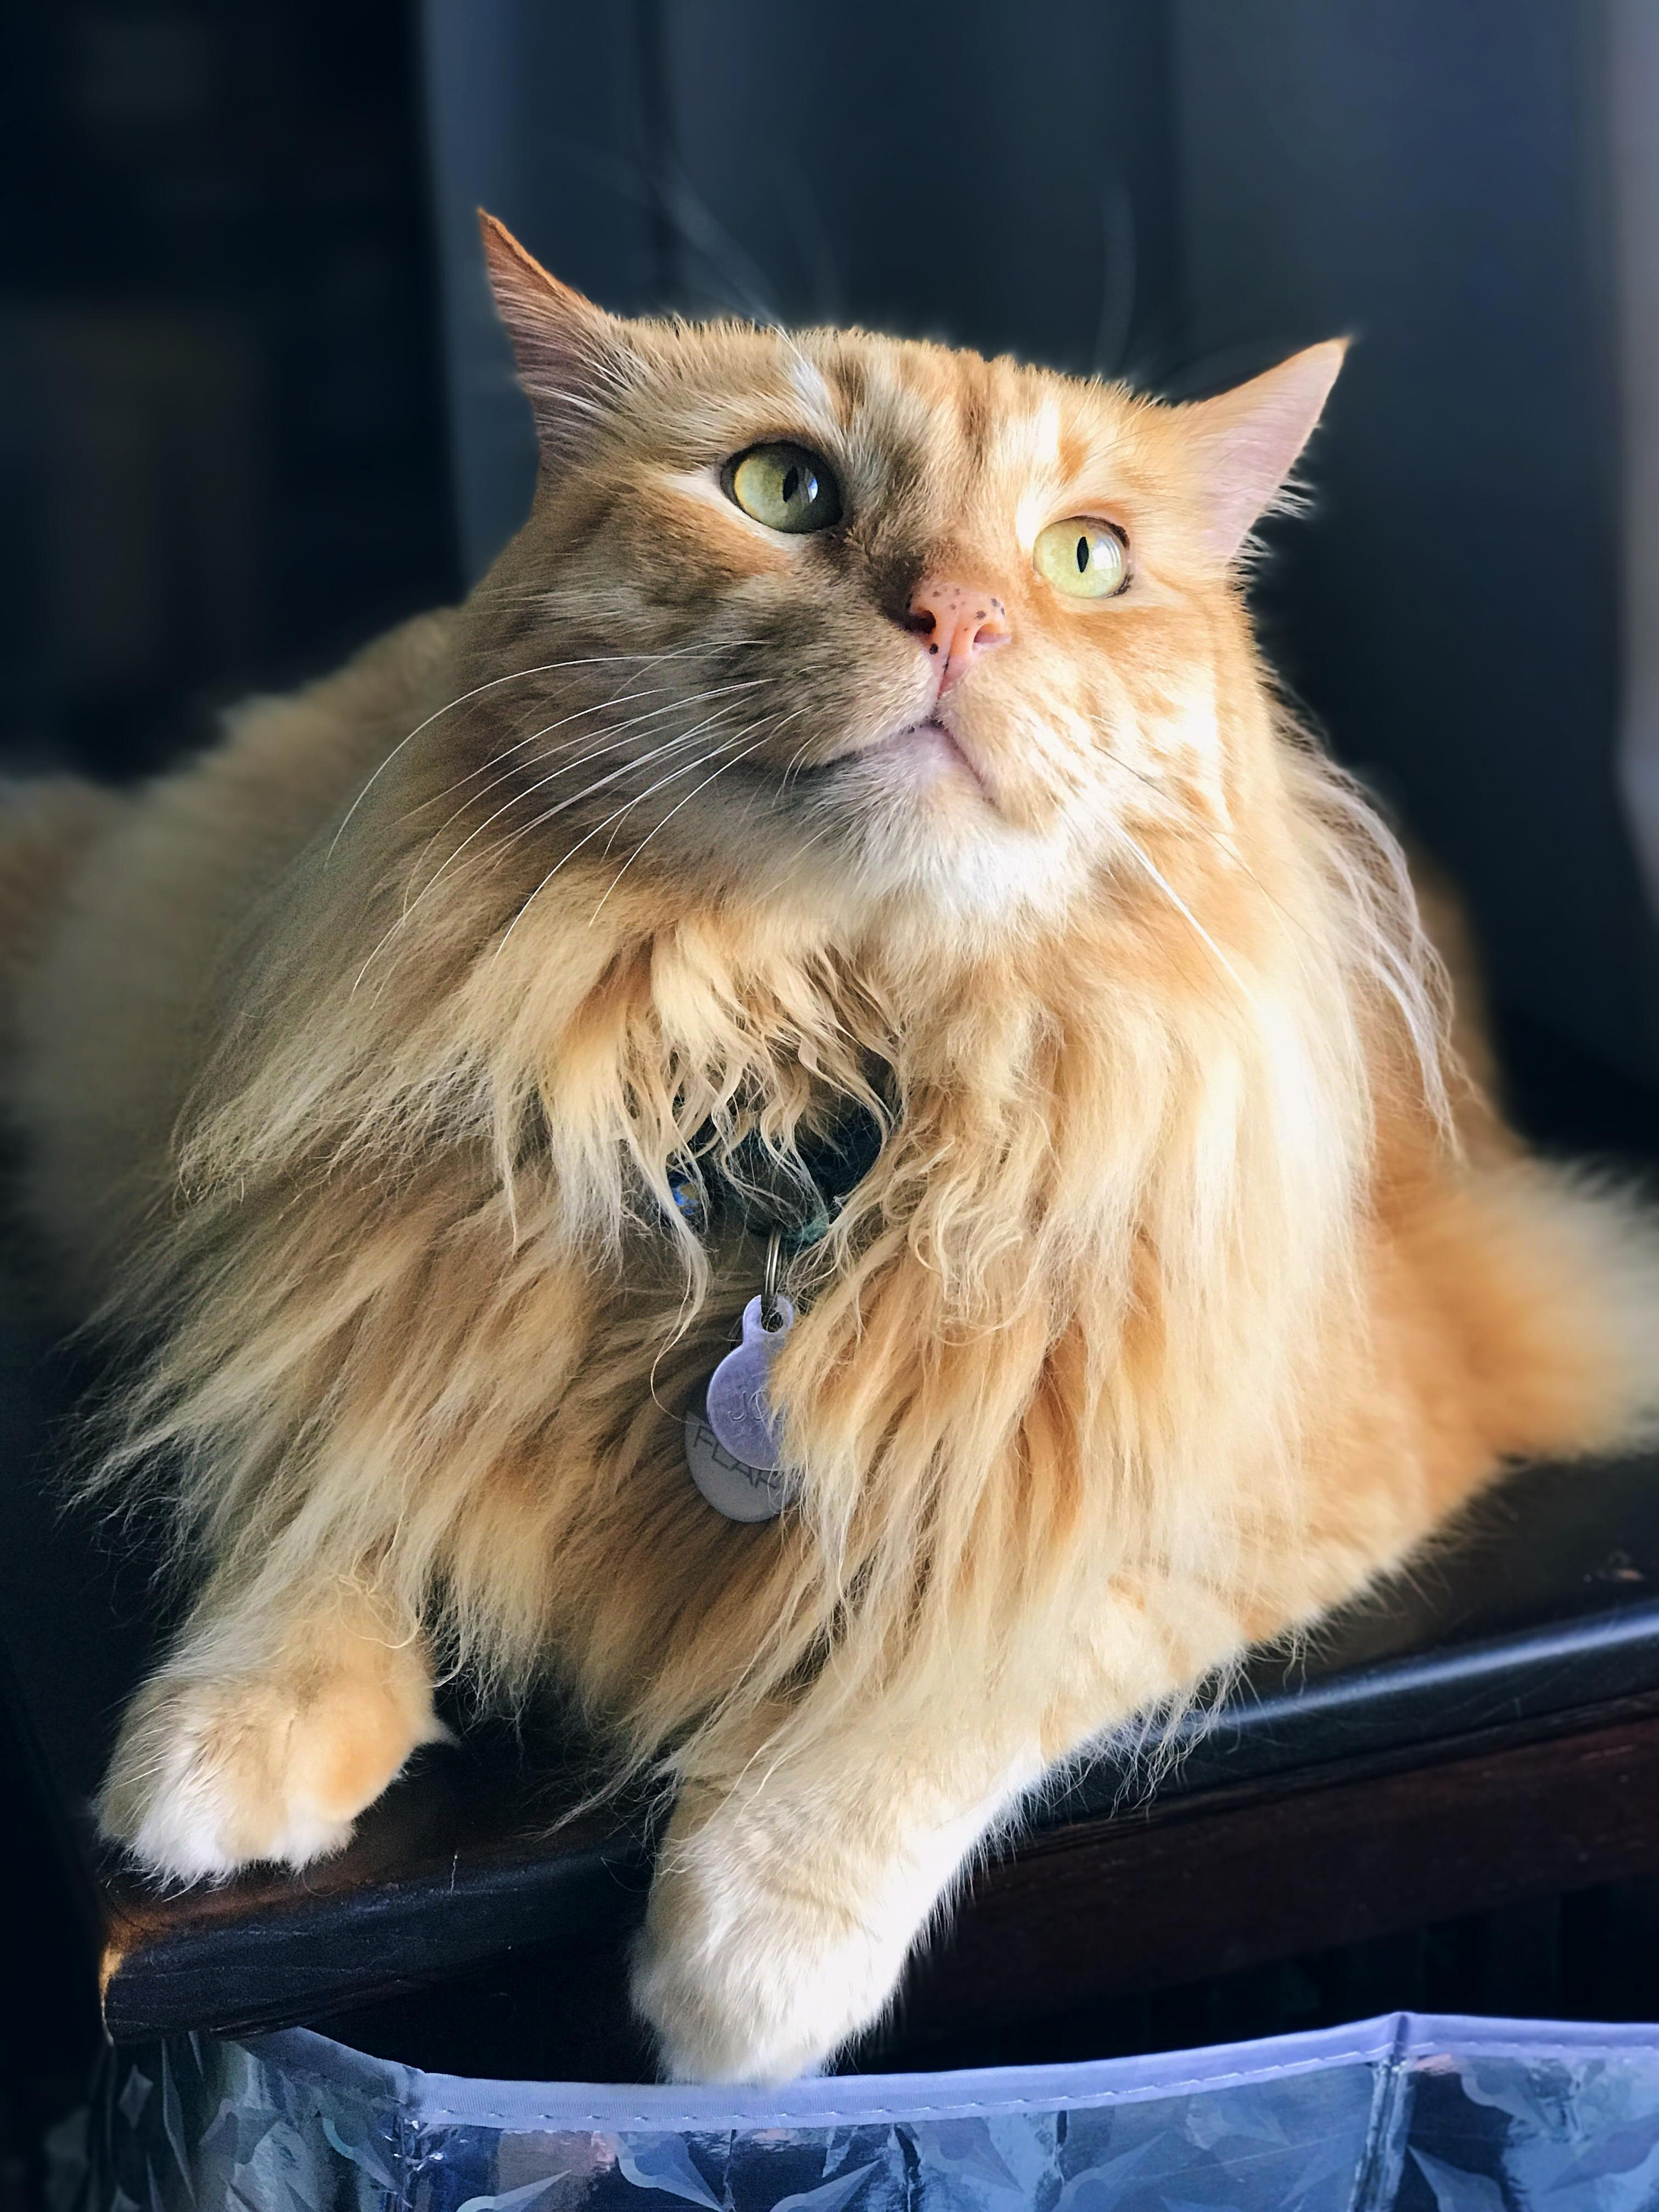 Joey, my majestic lion! 10 years old and counting, still as fluffy as ever